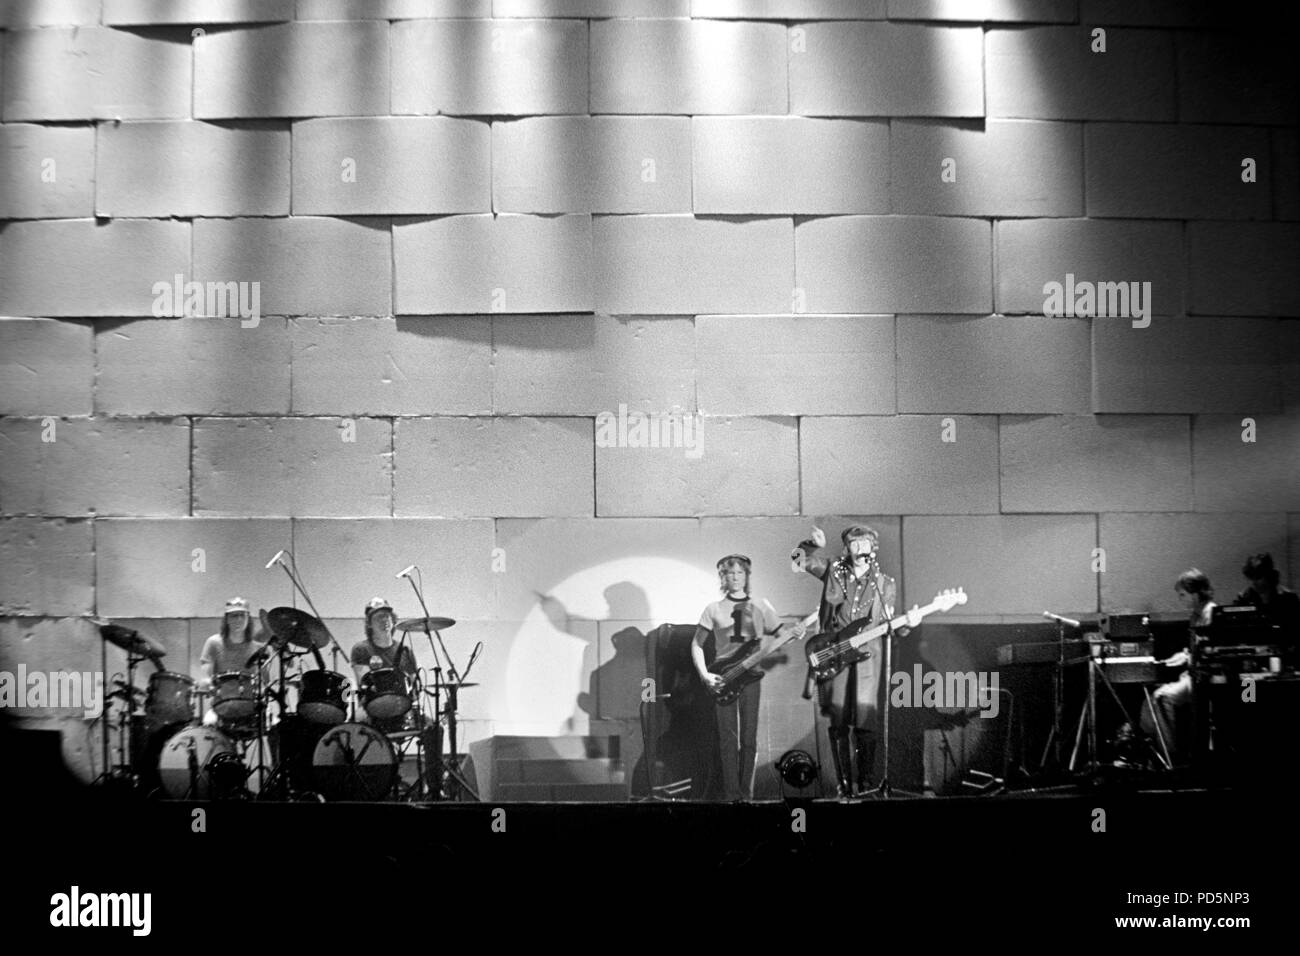 Dortmund, Germany, 20th. Feb.1981 - British psychedelic rock band PINK FLOYD performing THE WALL concert at the Westfalenhalle in Dortmund/Germany (digital image from a b/w-film-negative) - Stock Image